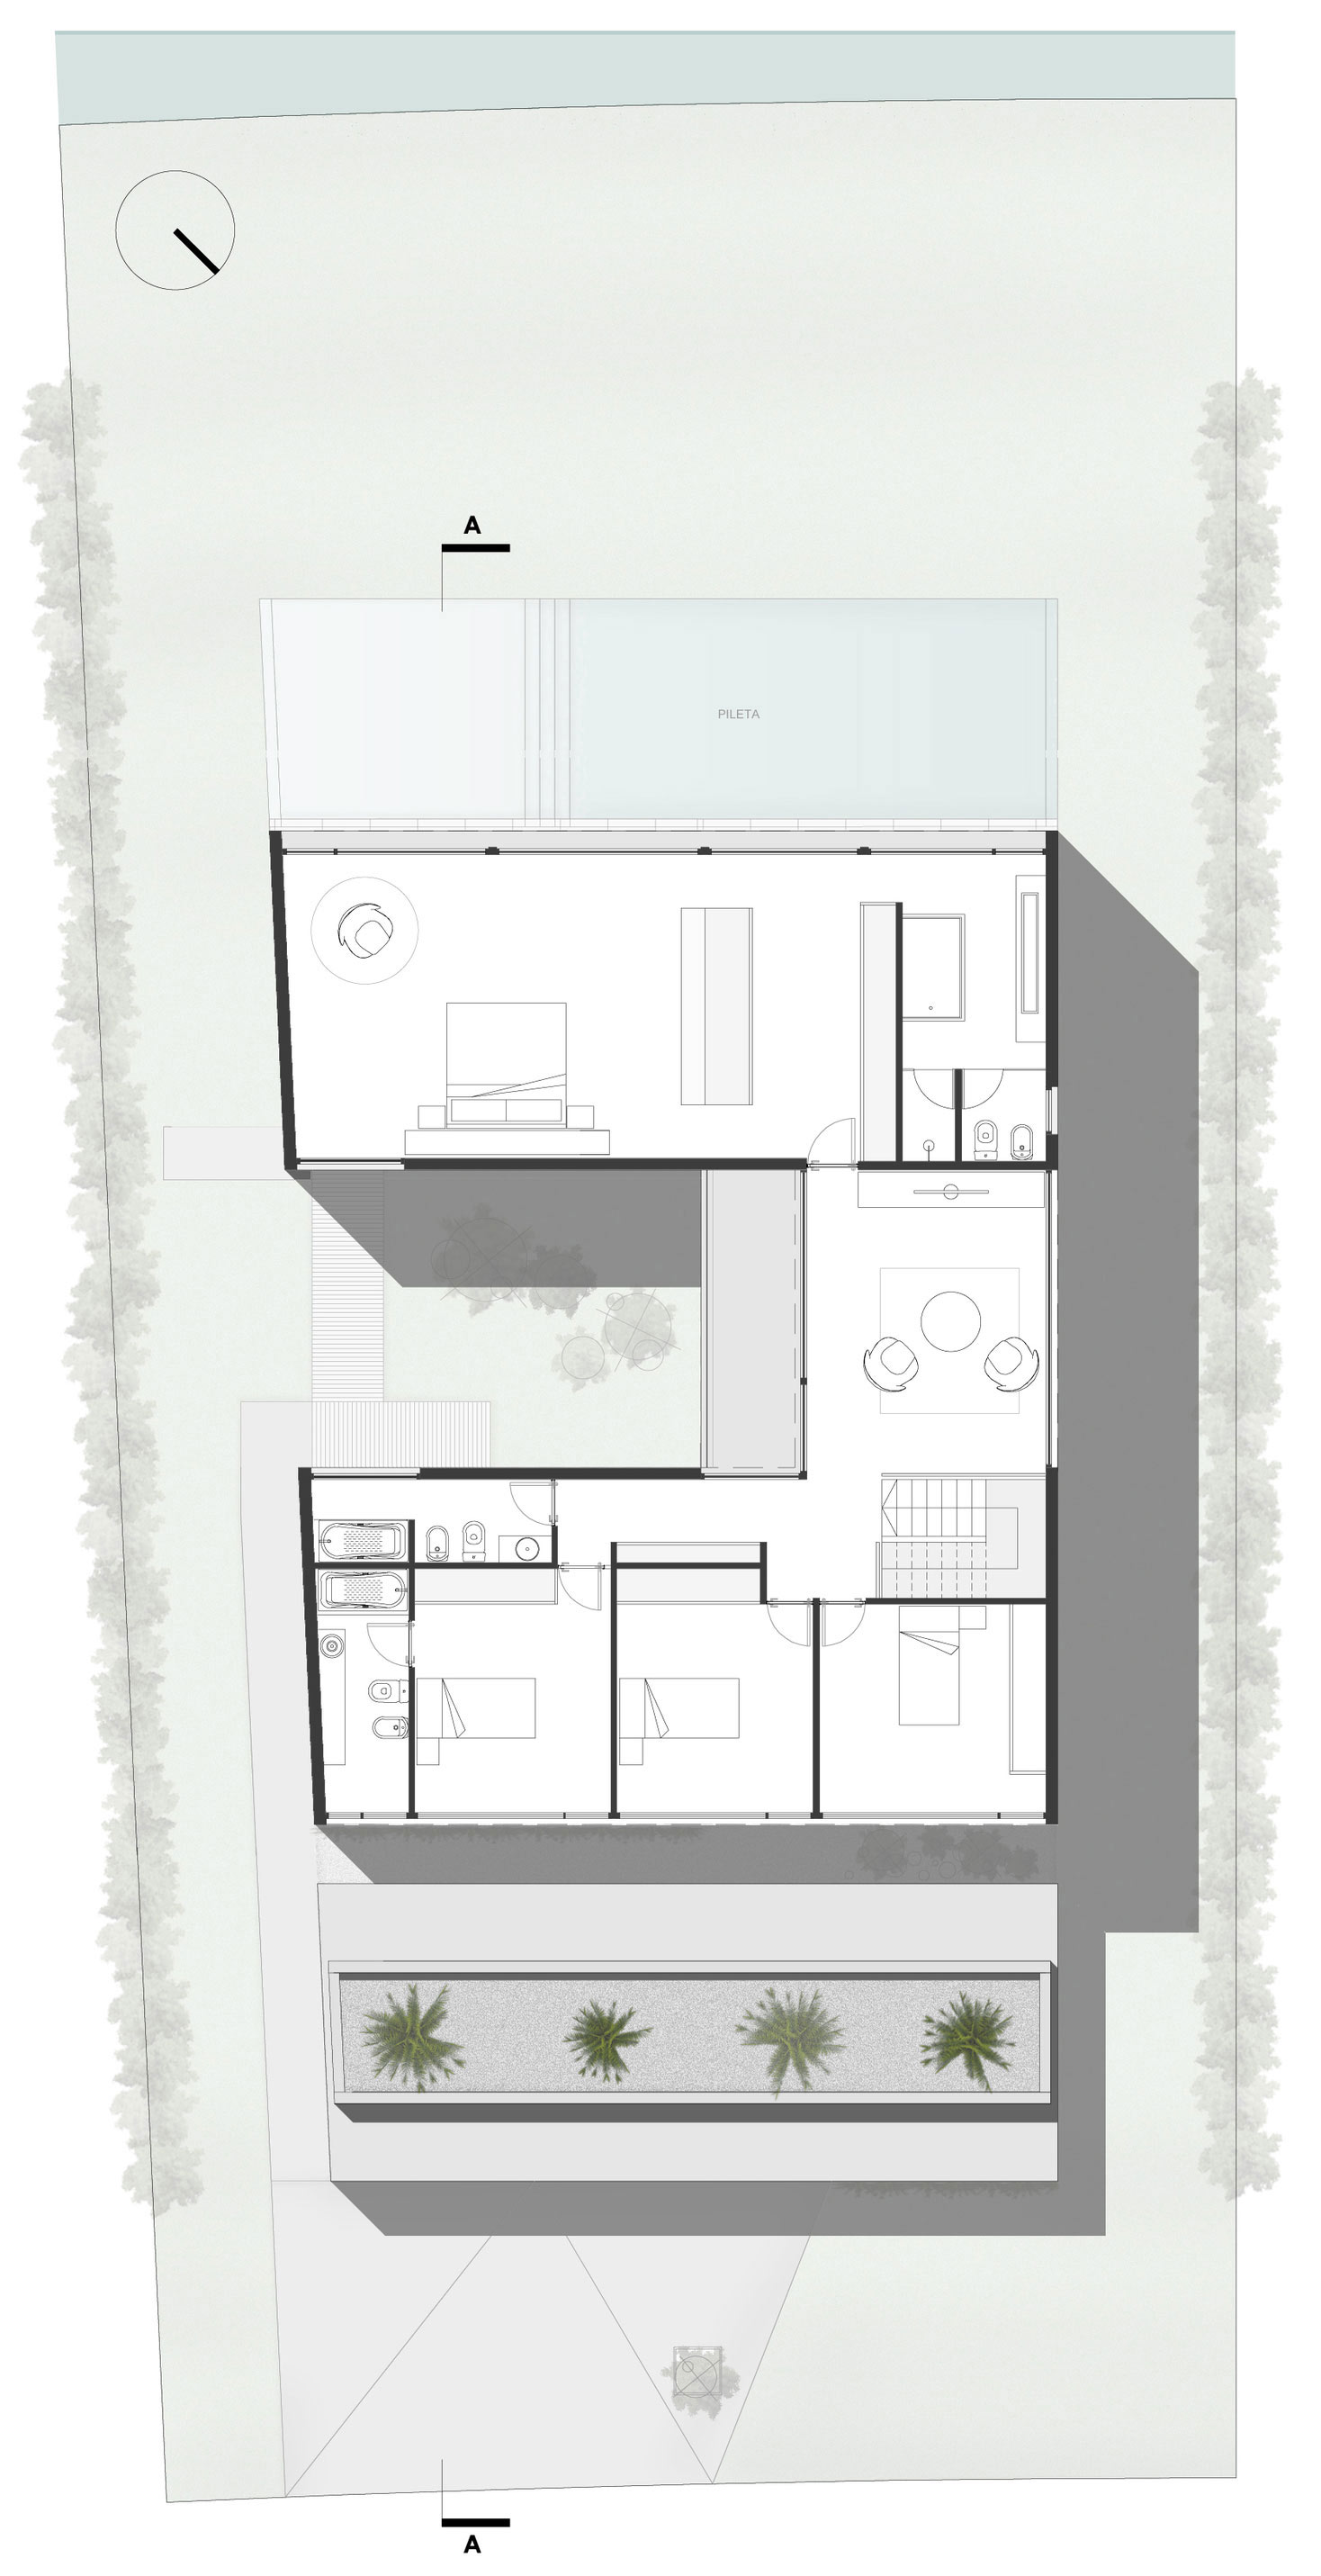 First Floor Plan, Modern House in Buenos Aires, Argentina